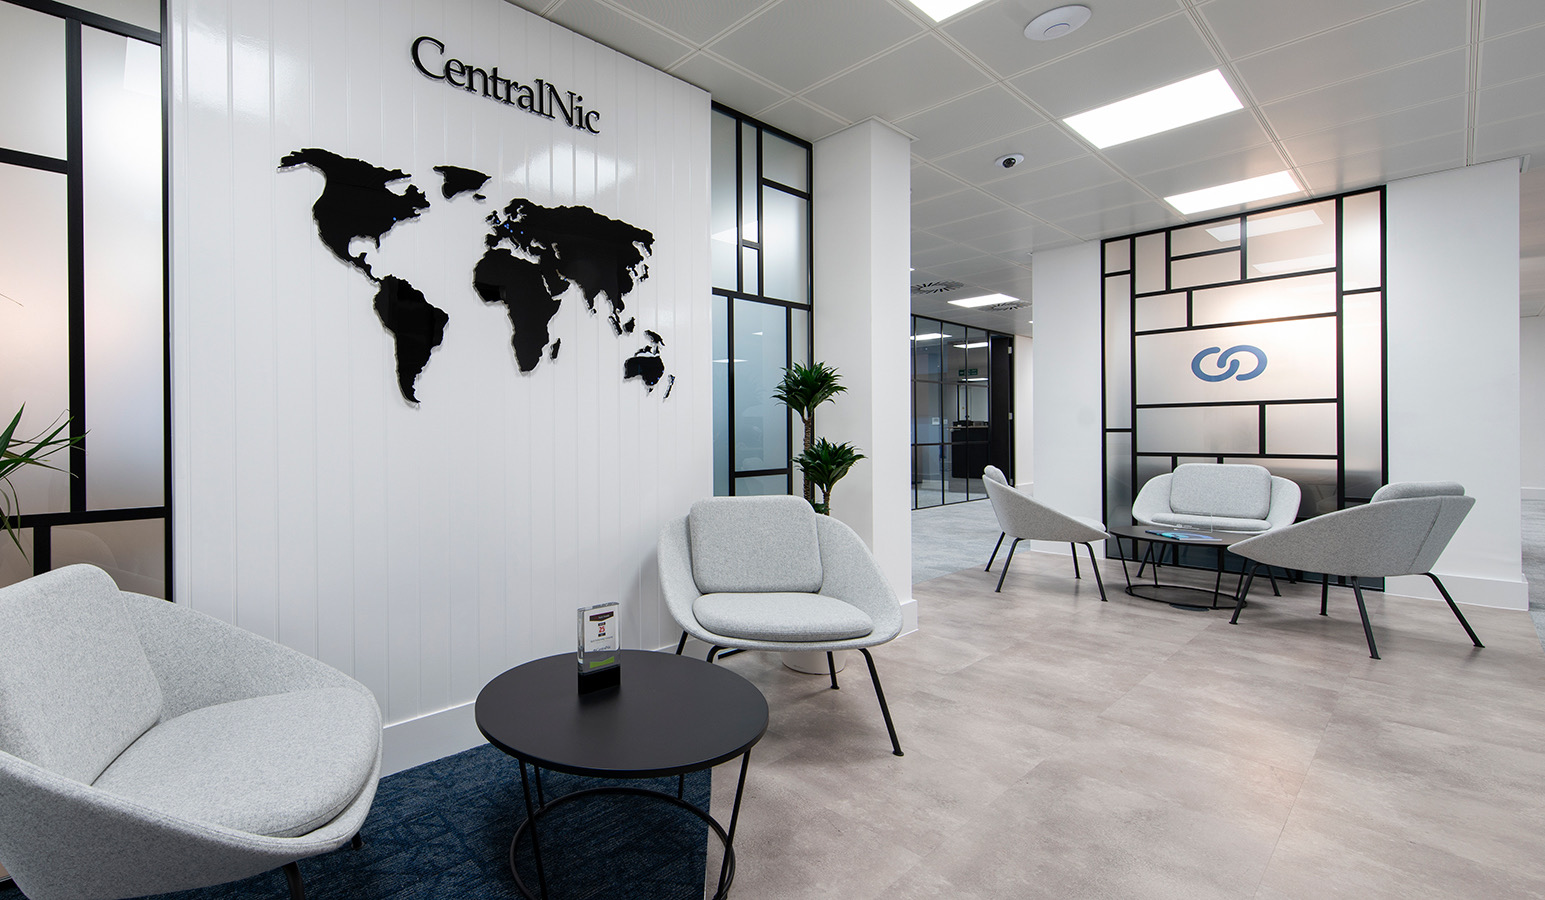 centralnic-london-office-1